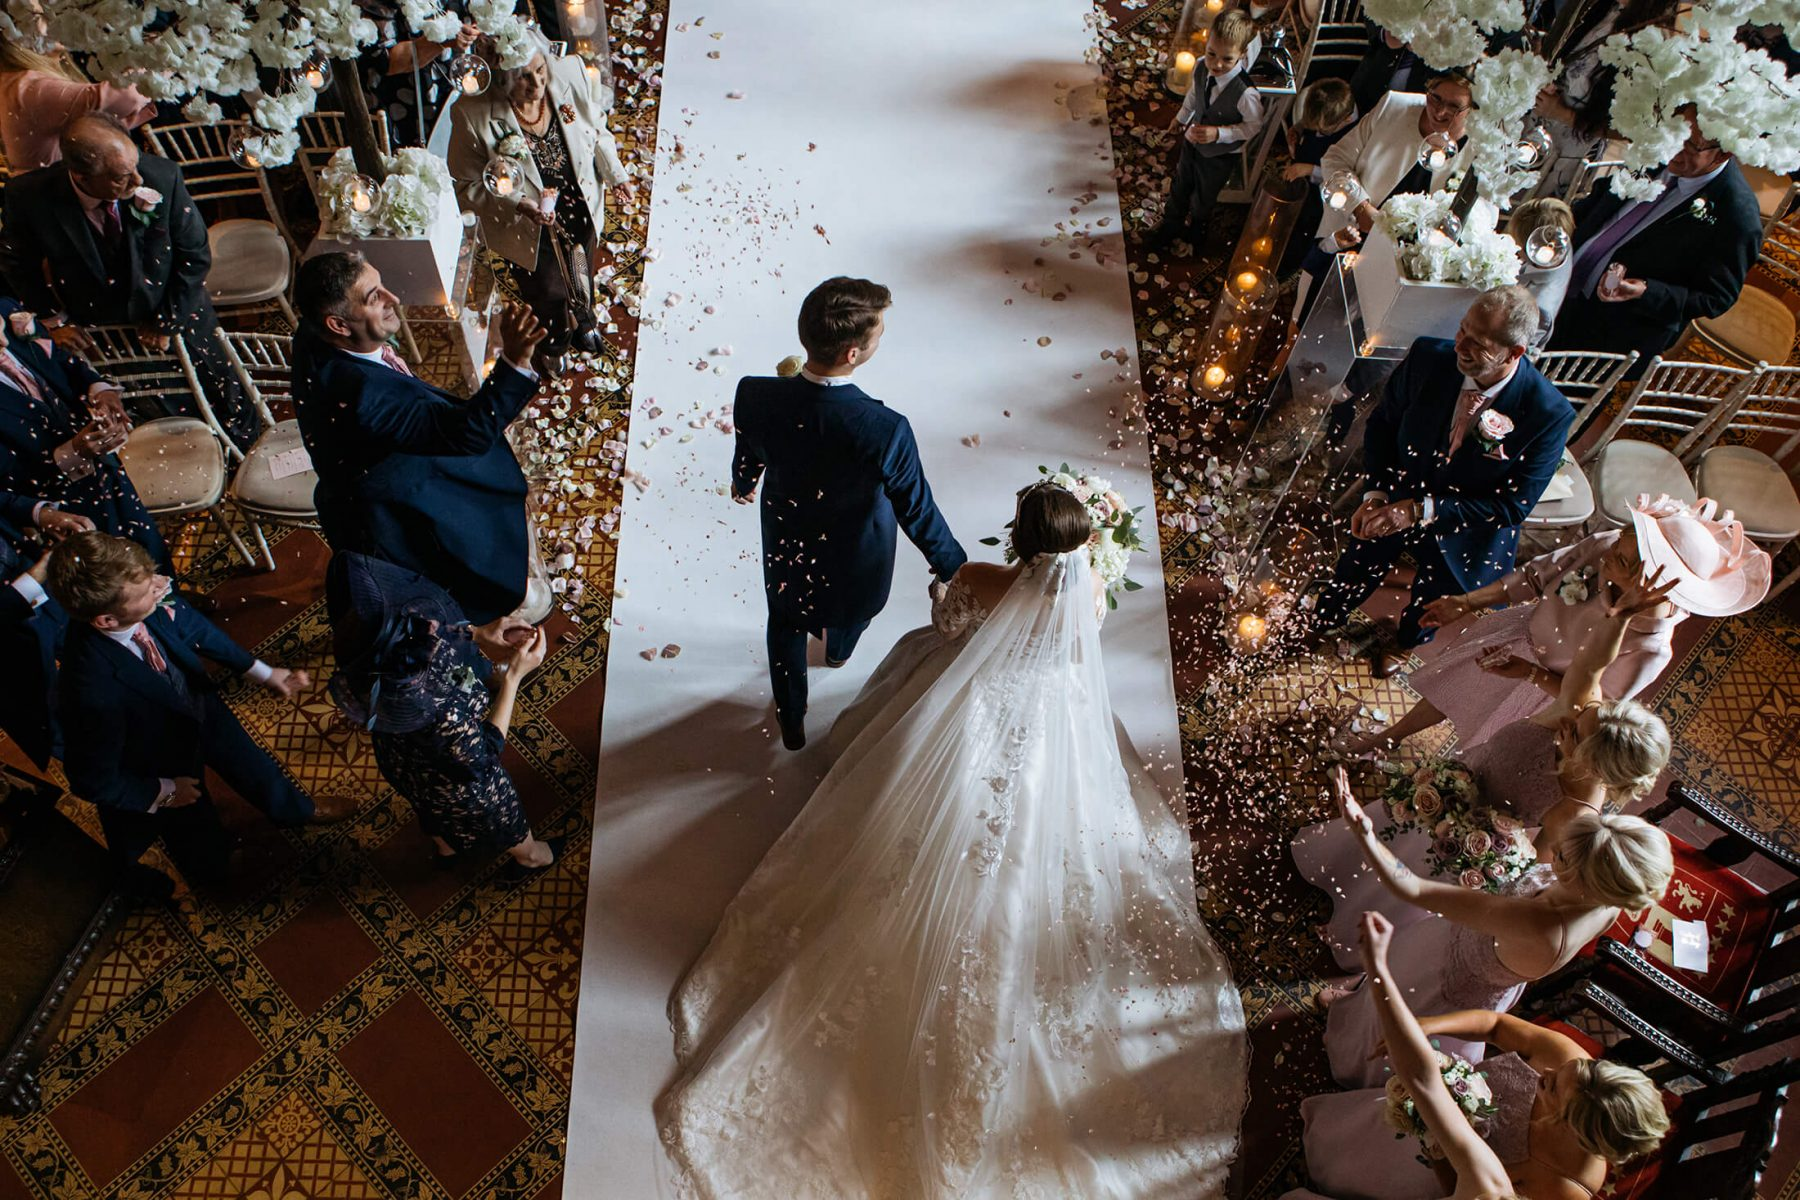 A photograph looking down on the bride and groom after their wedding ceremony at Peckforton Castle